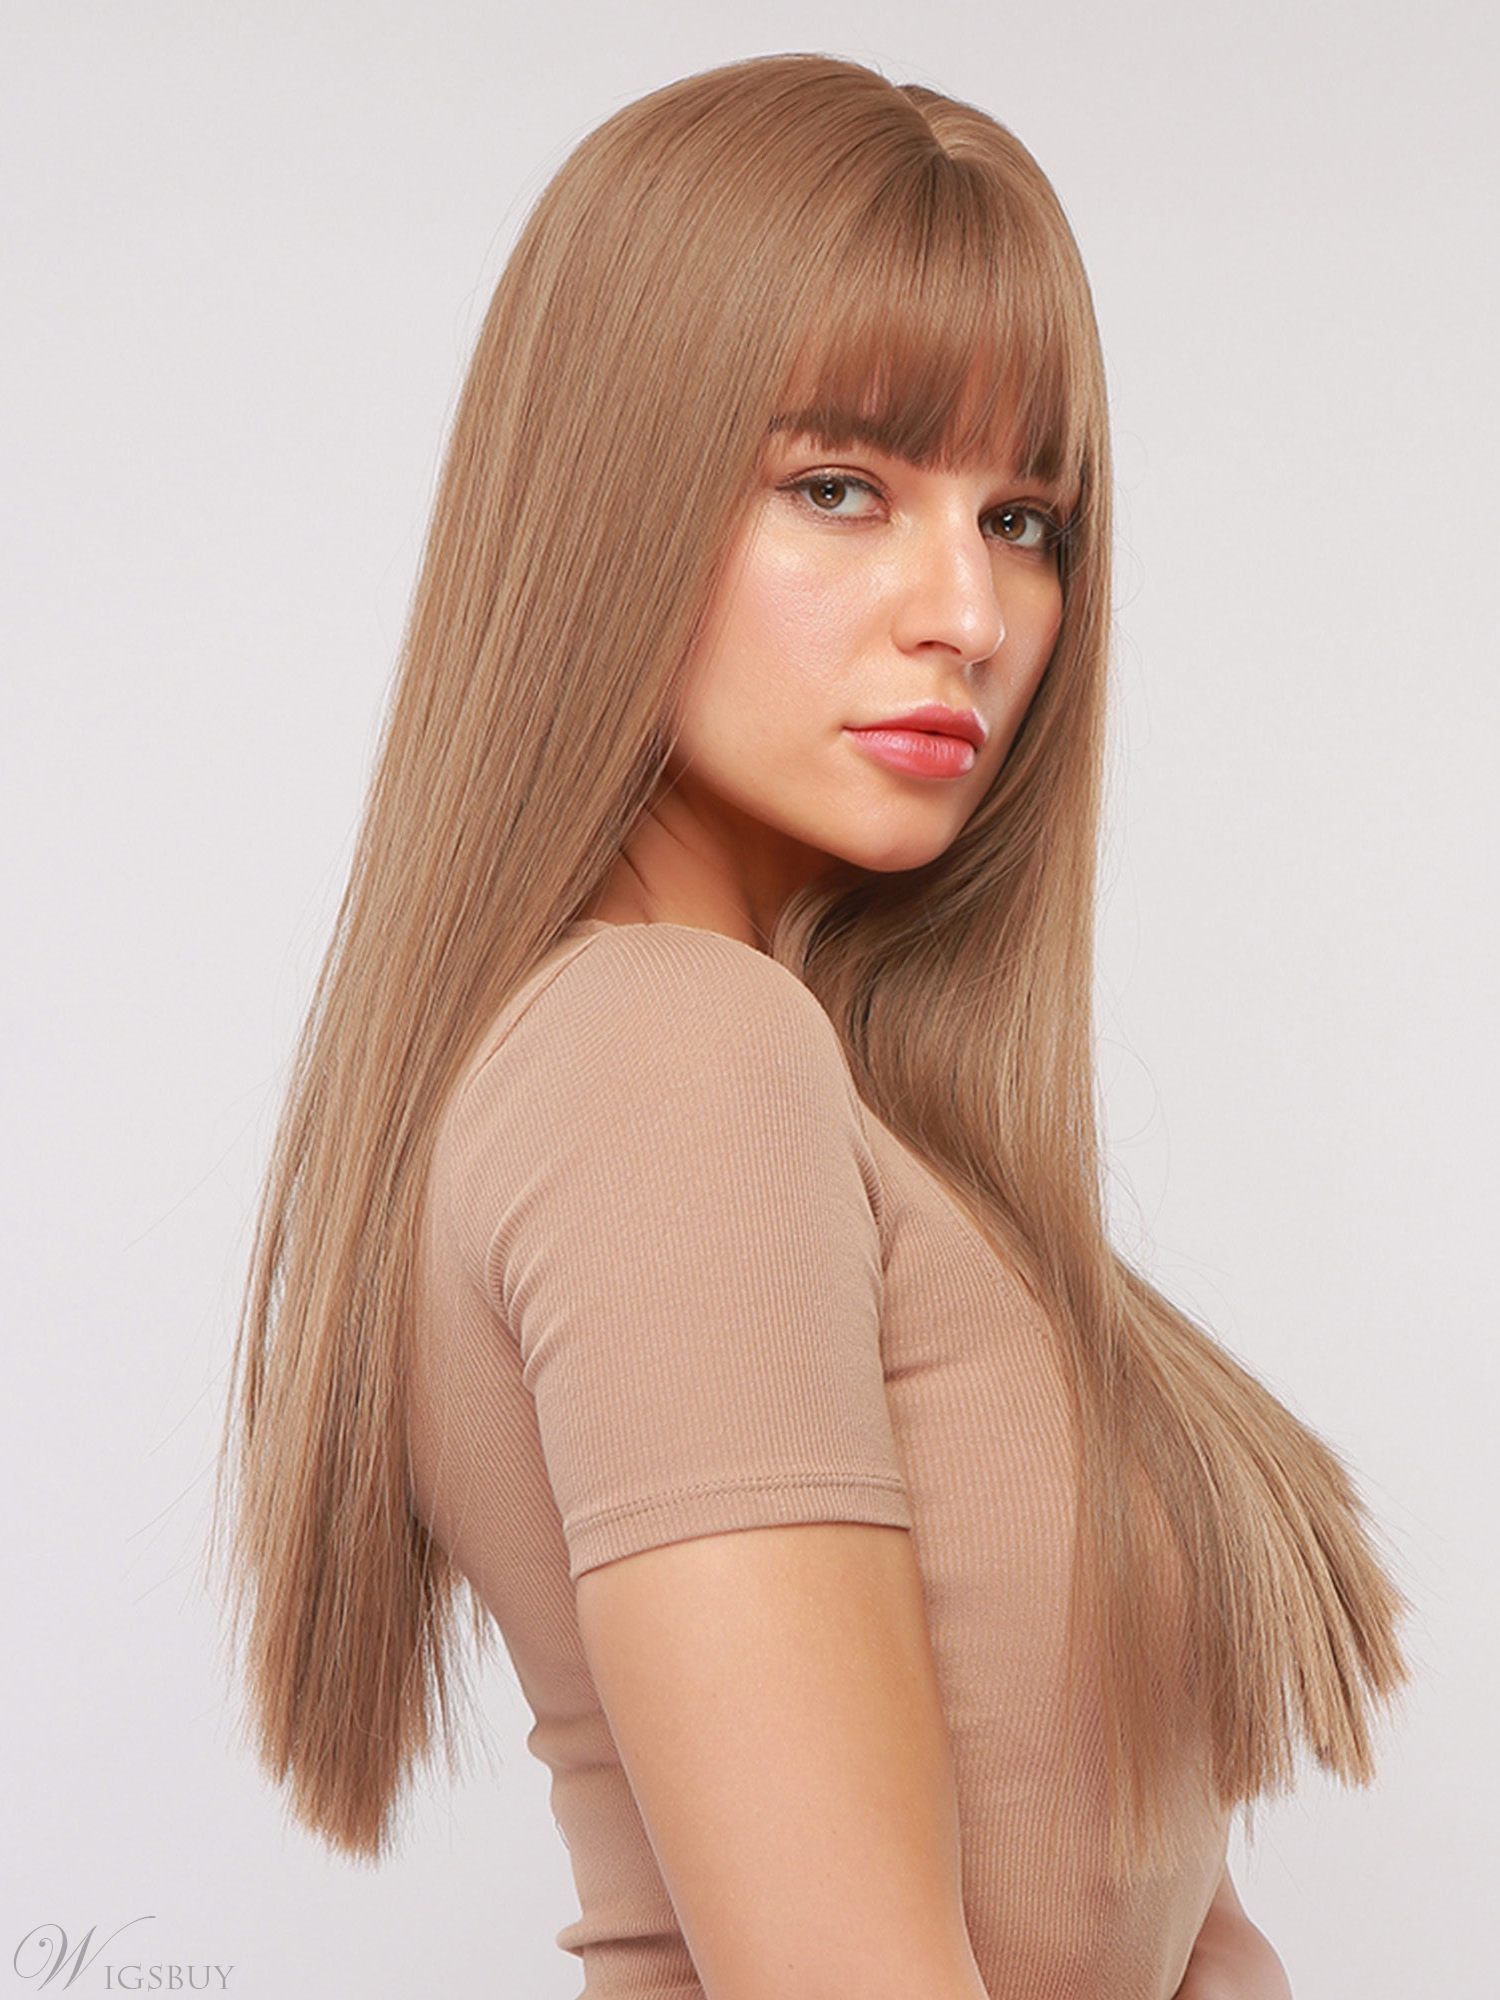 Women's Long Natural Straigt Synthetic Hair With Bangs Capless Wig 26 Inches